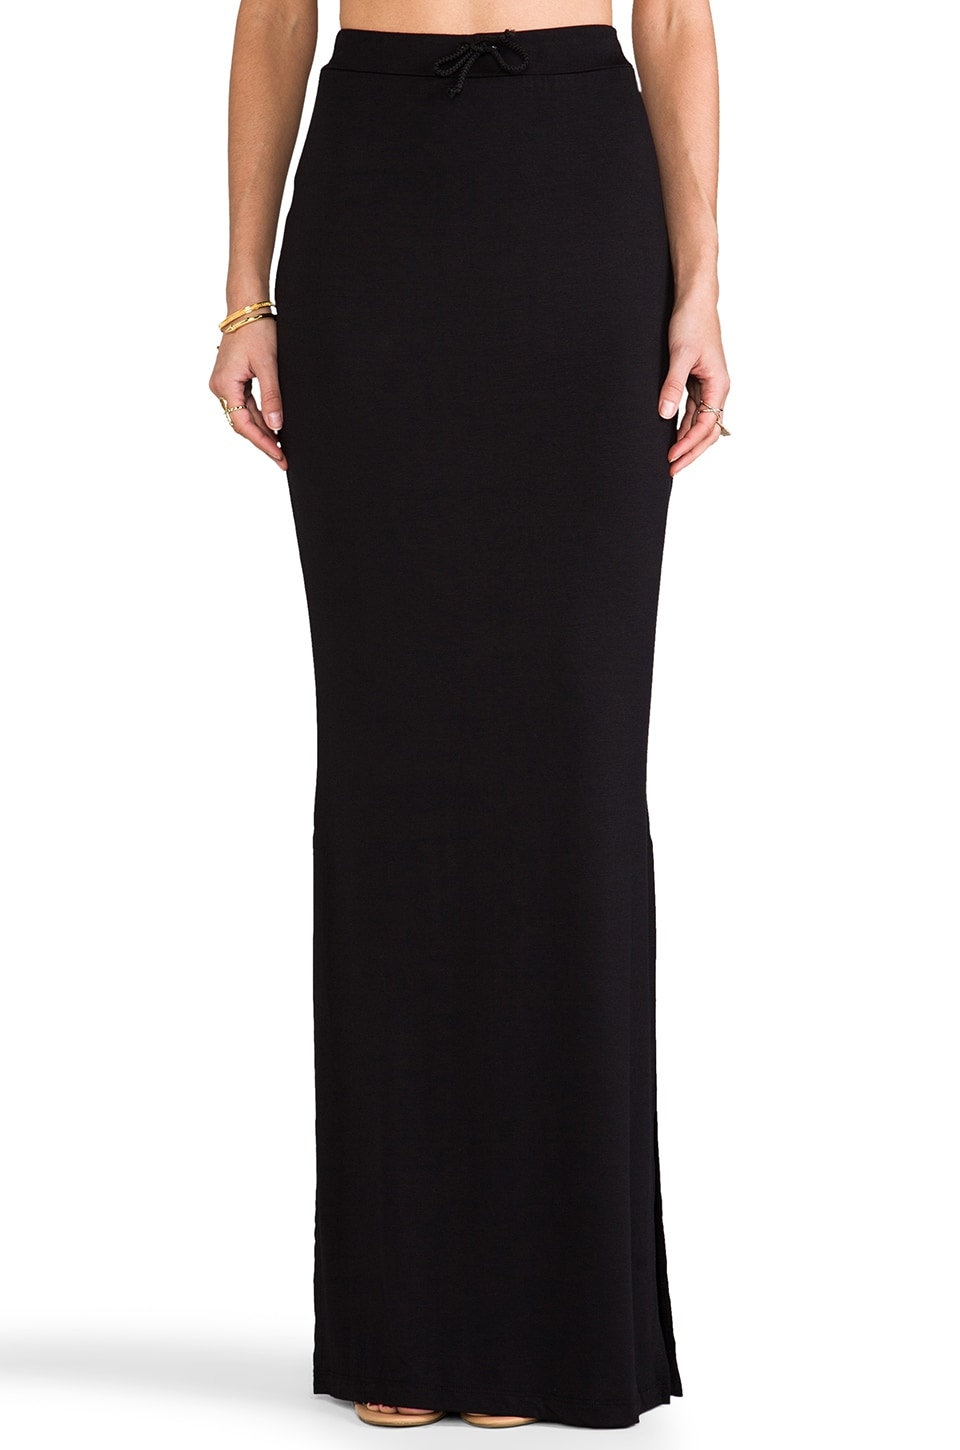 Saint Grace Fern Maxi Skirt in Black